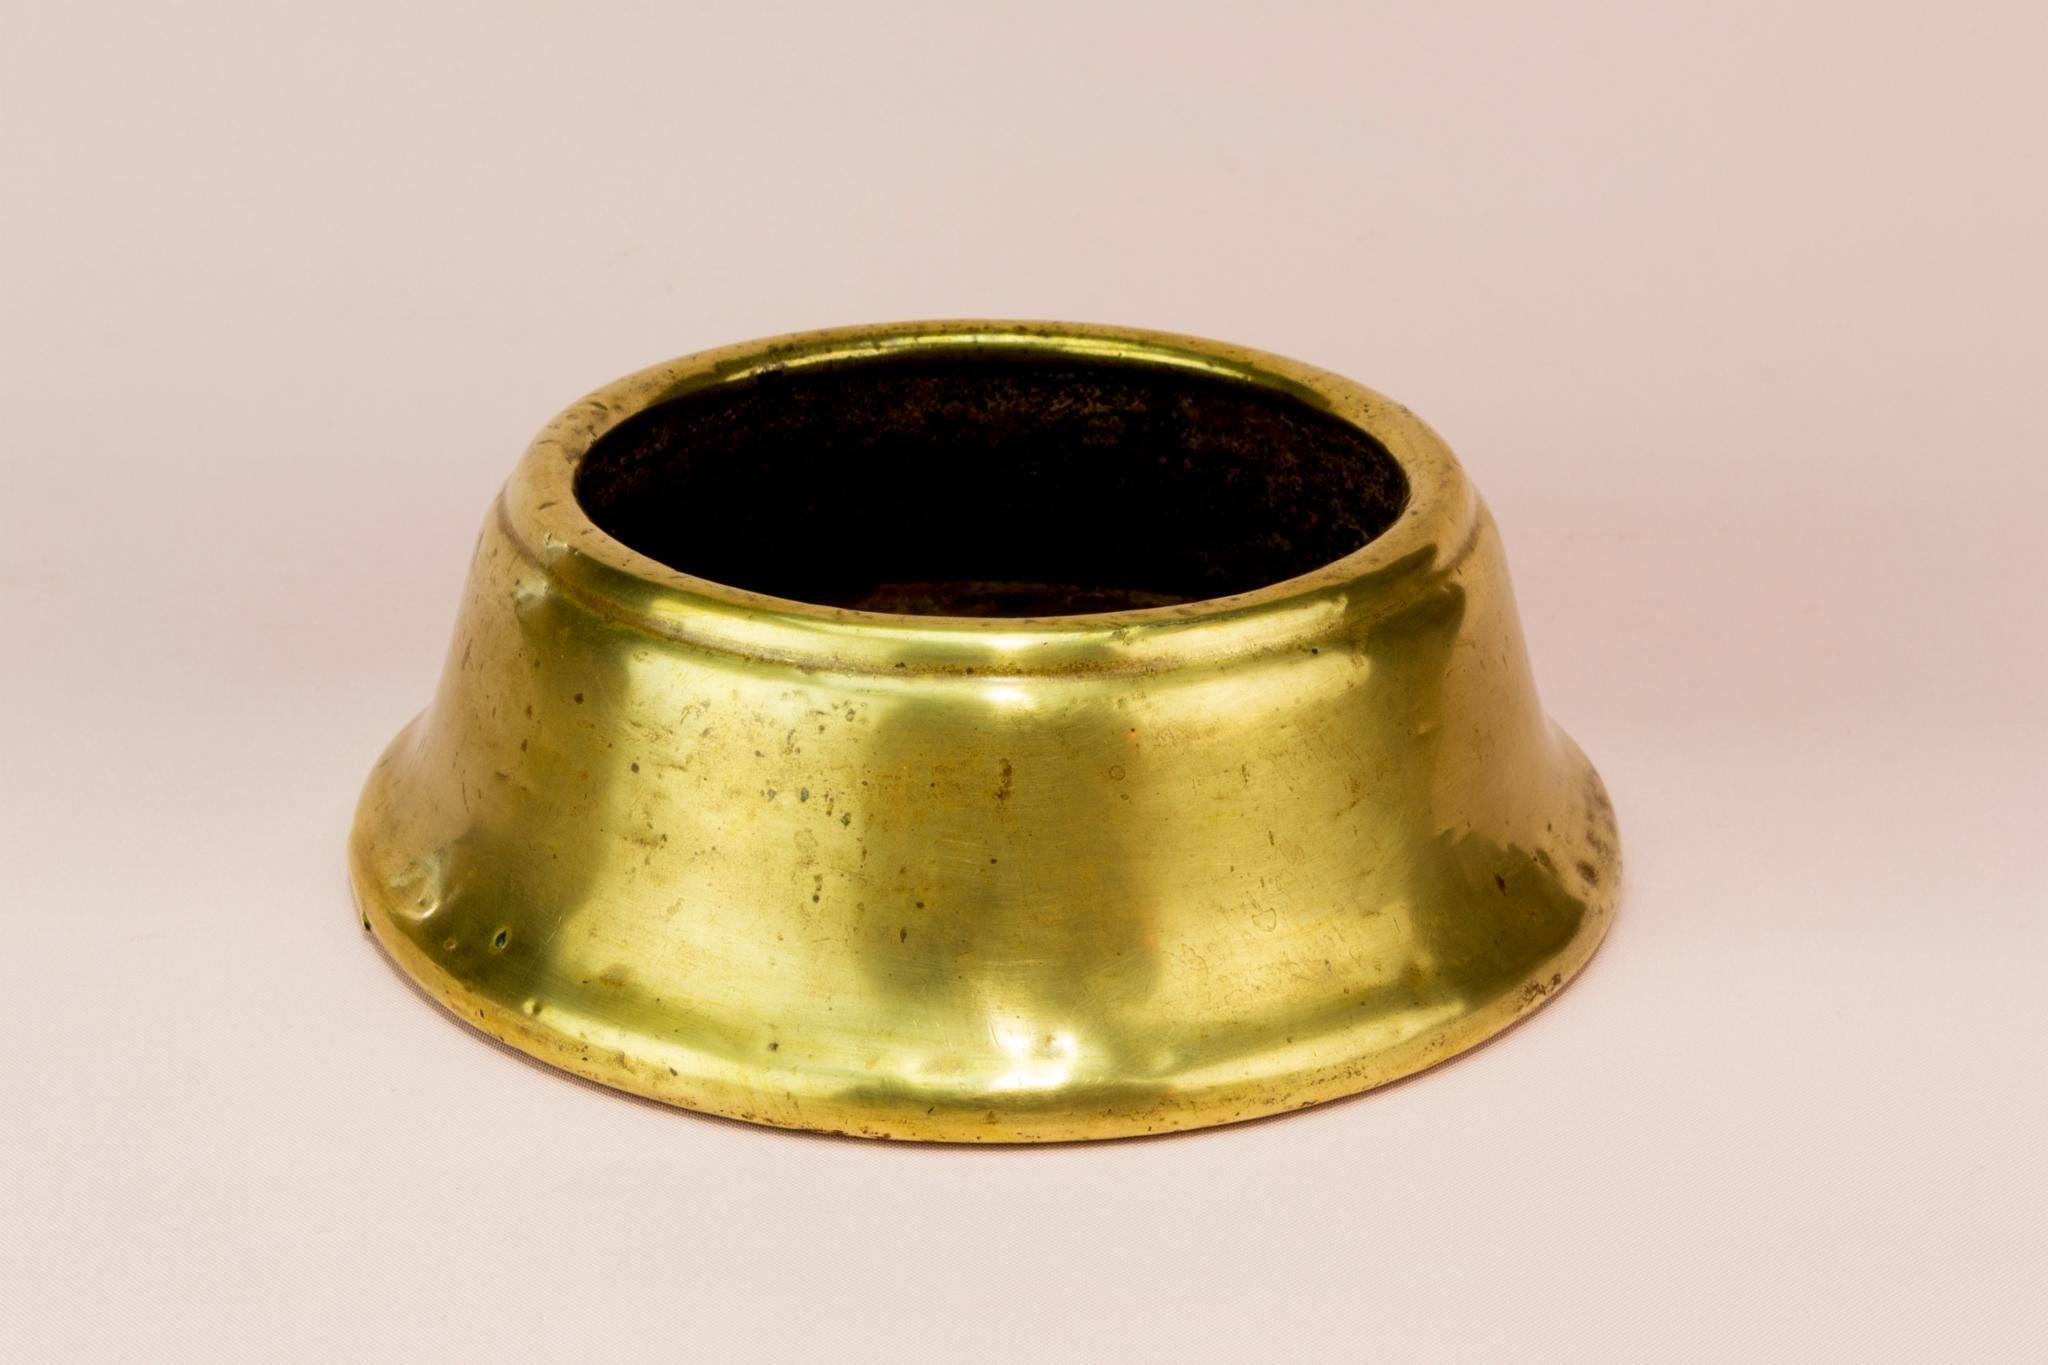 Solid brass hallway umbrella stand base, English early 1900s